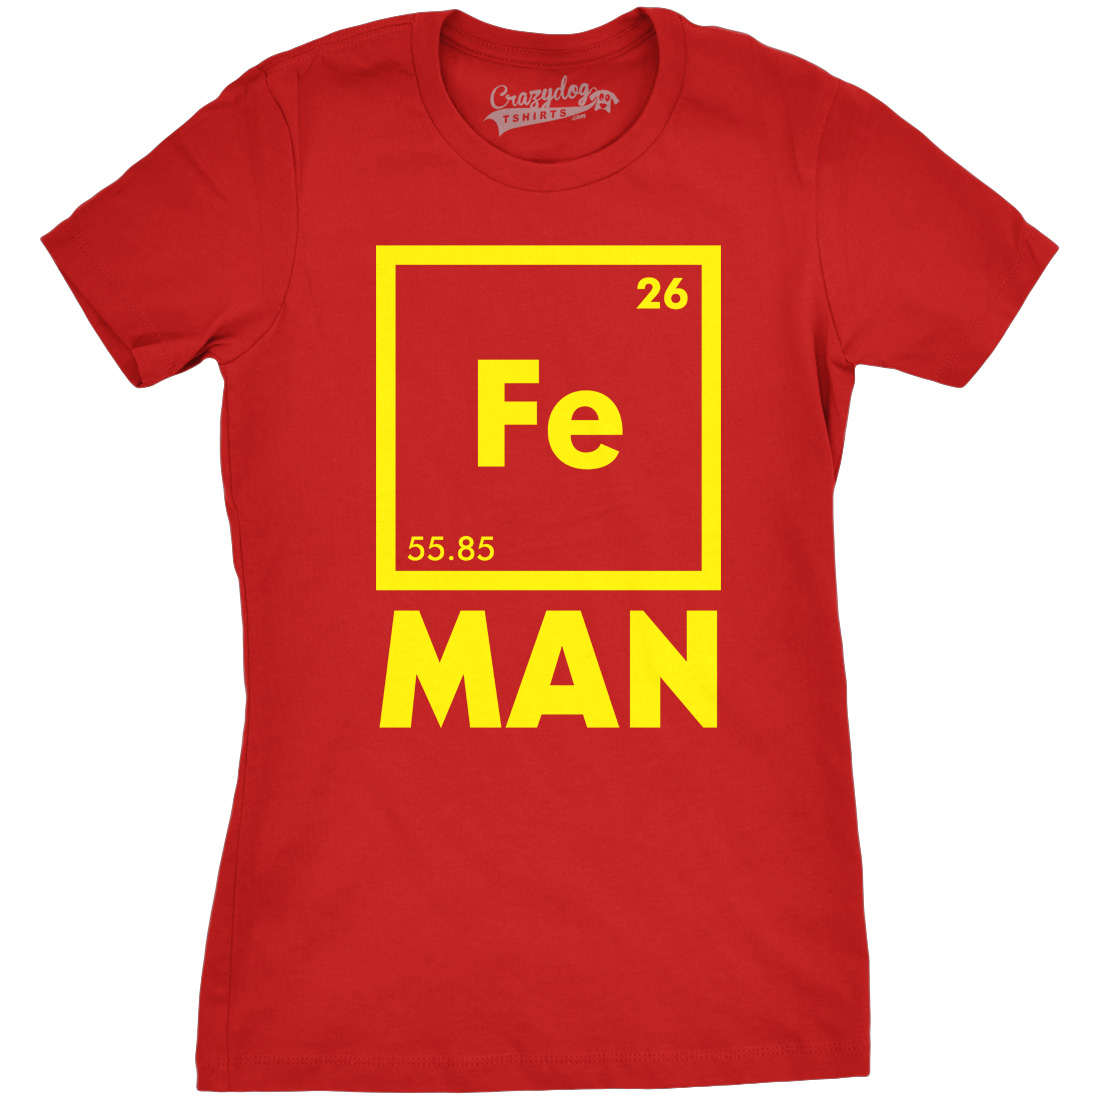 Womens Iron Man Science T shirt Cool Shirts Novelty Ladies Funny T shirt Graphic Design